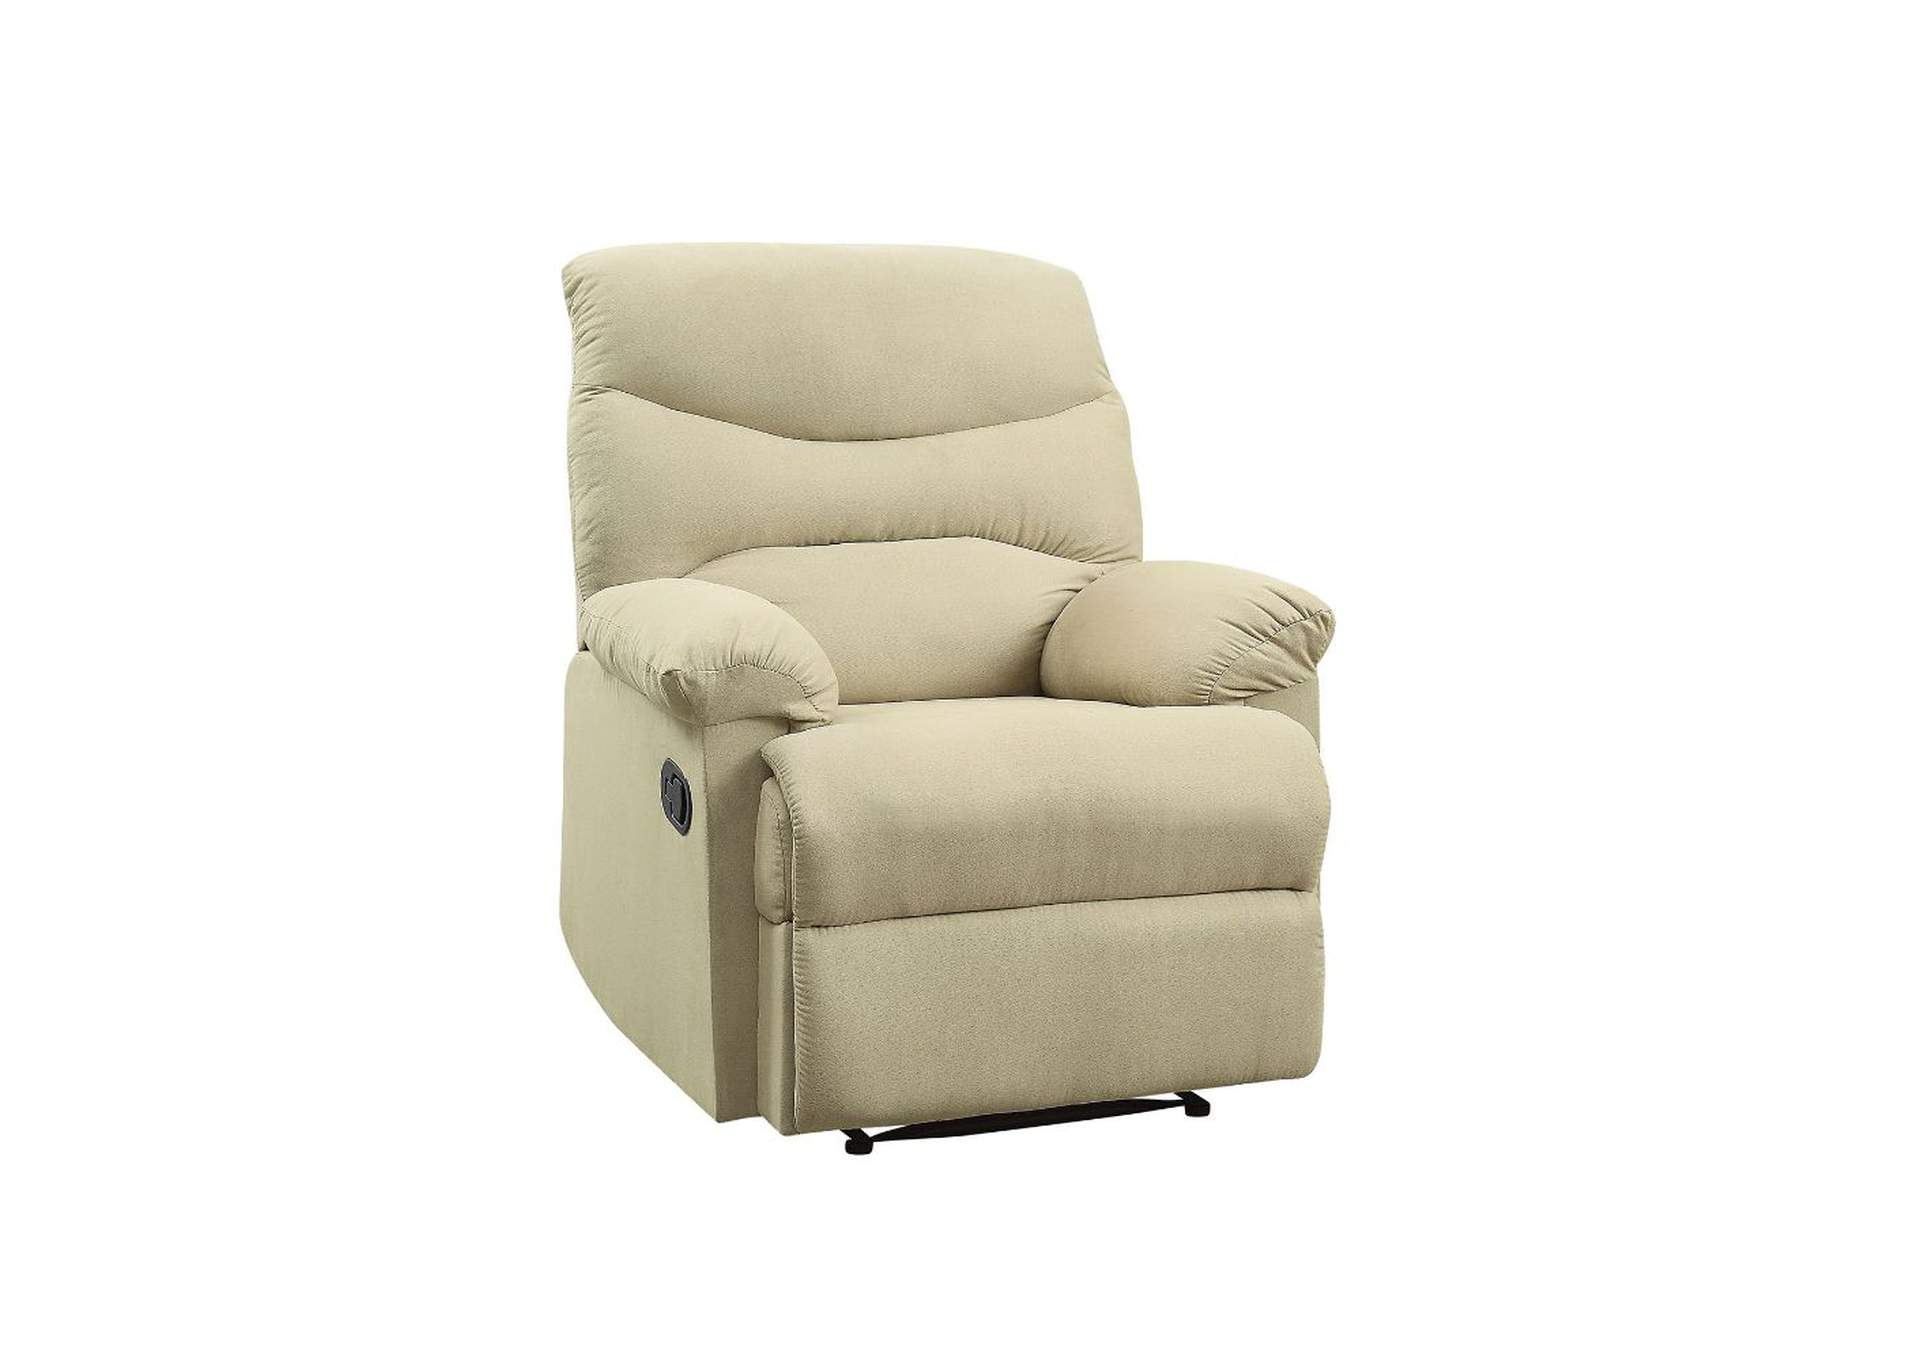 Arcadia Beige Recliner (Motion),Acme